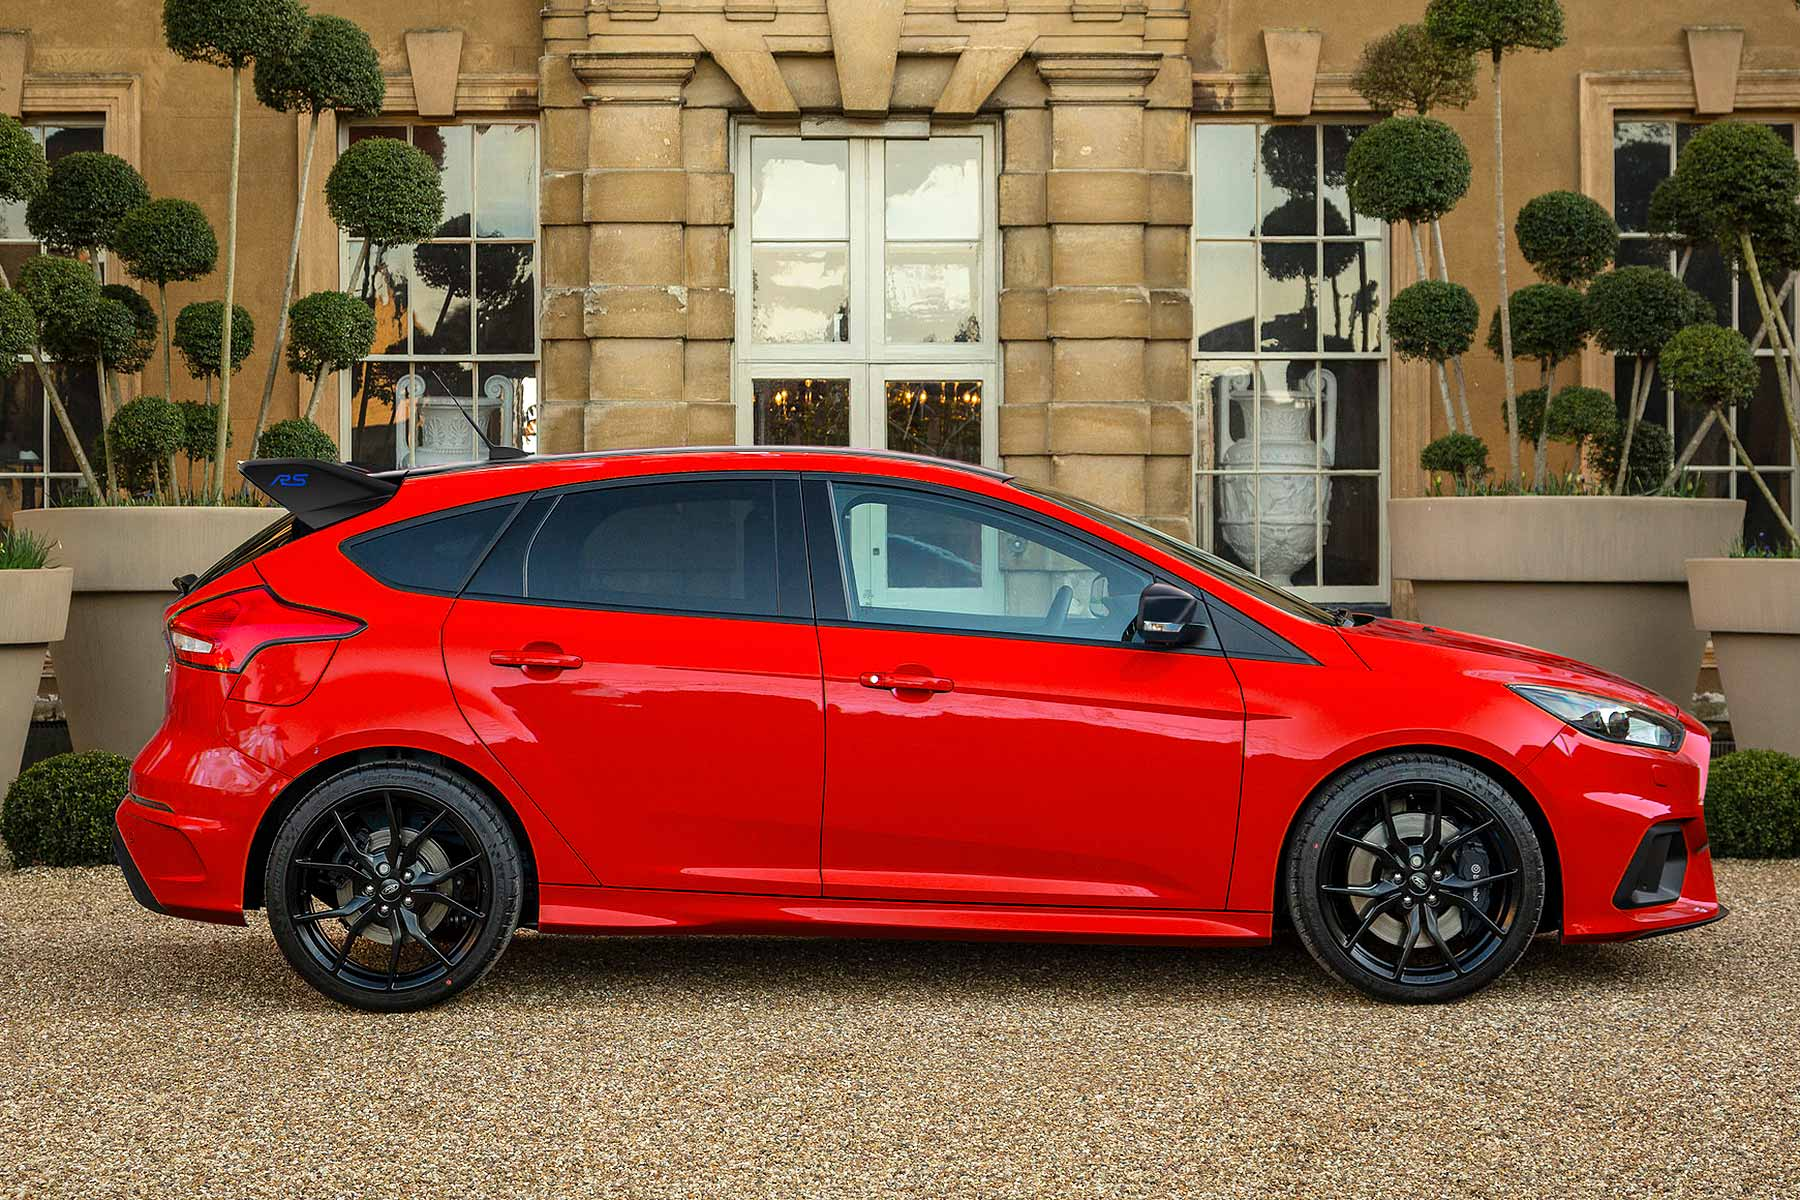 ford focus rs red edition limited run special revealed motoring research. Black Bedroom Furniture Sets. Home Design Ideas